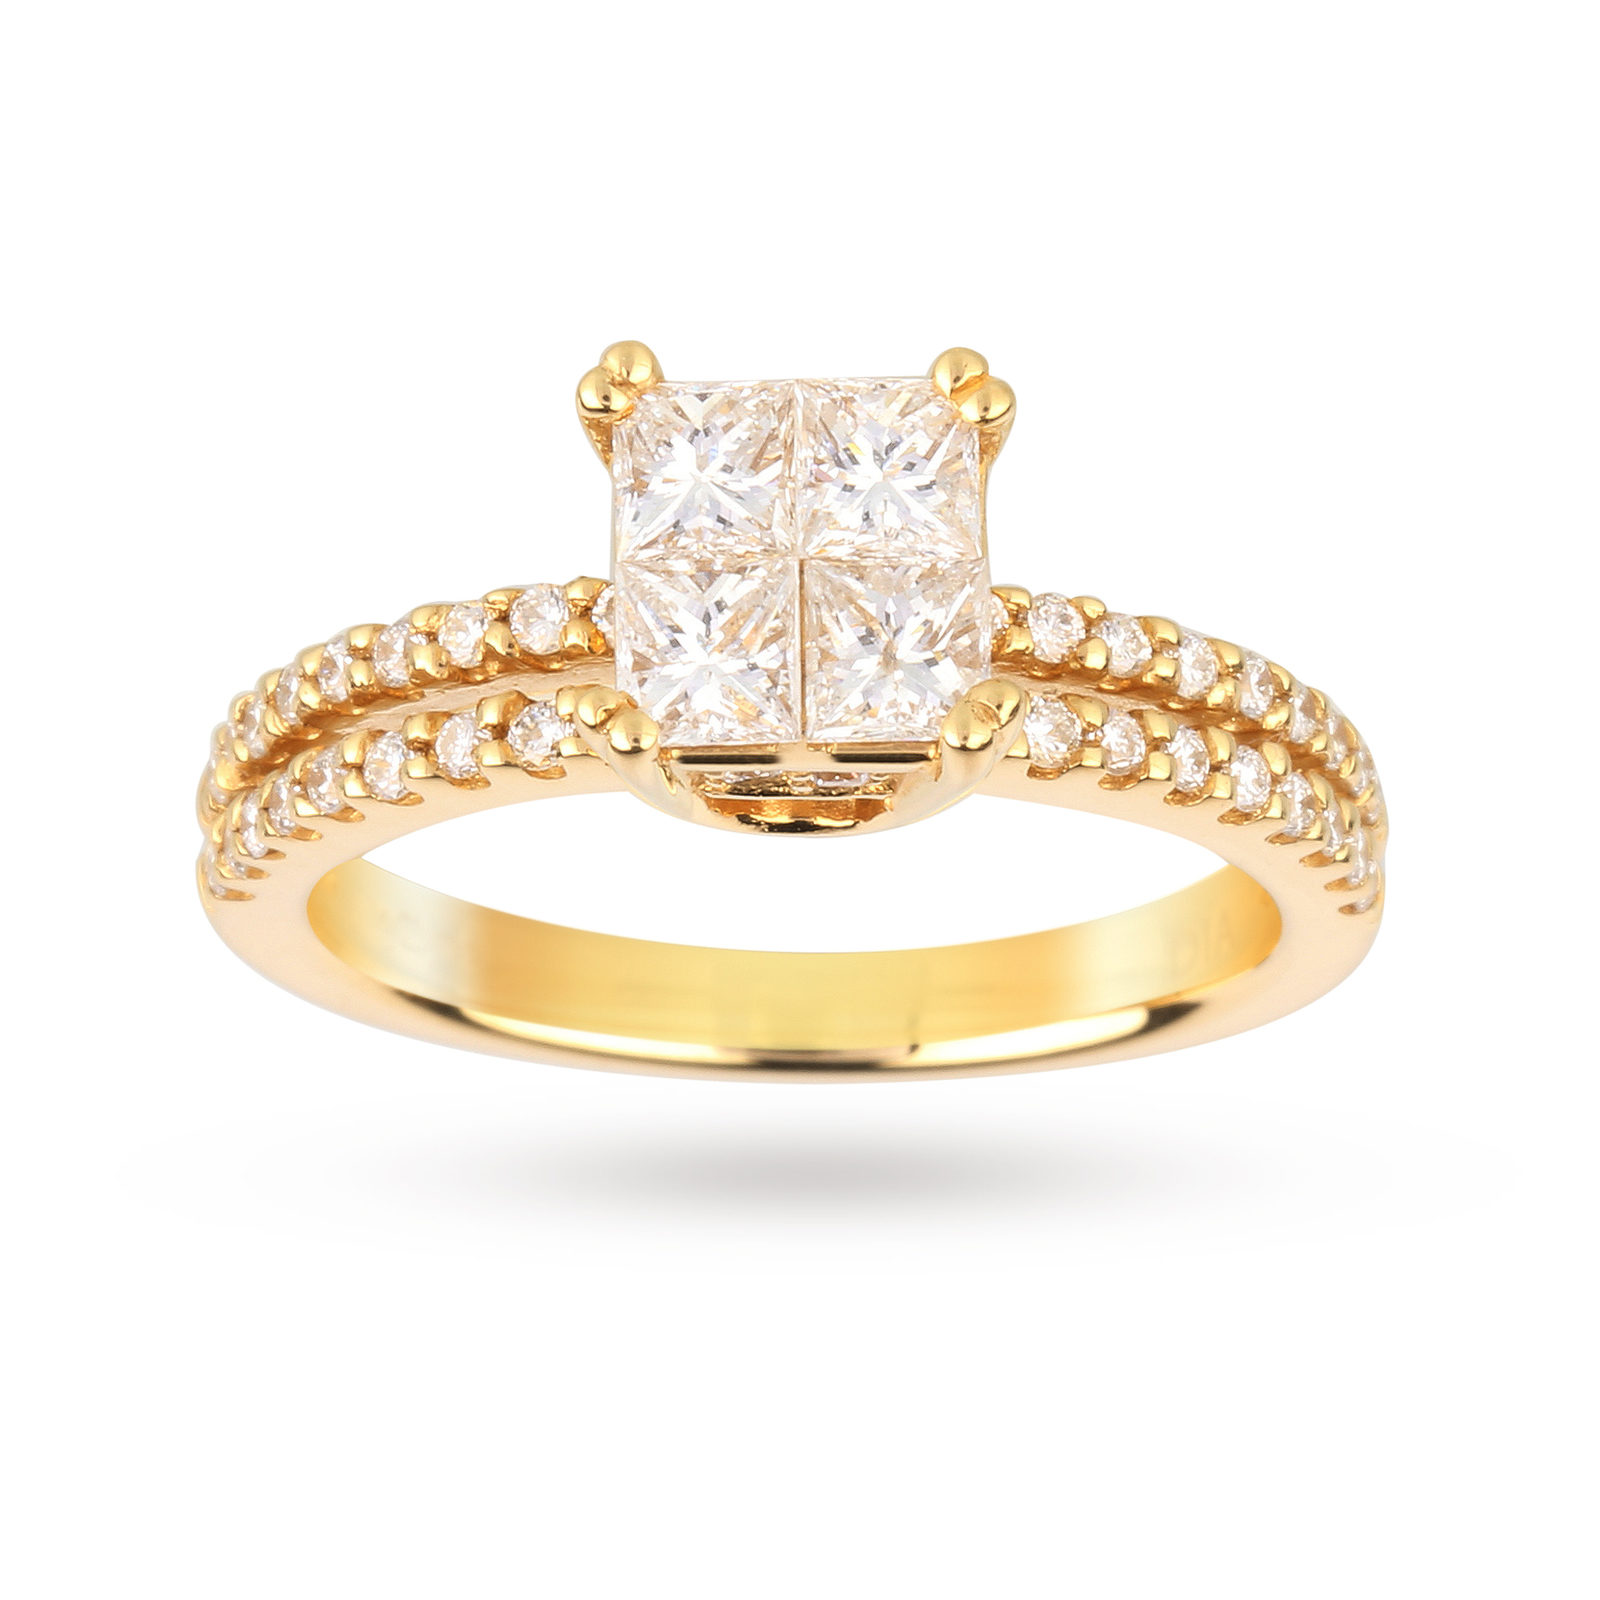 18 Carat Yellow Gold 0.79 Total Carat Weight Diamond Ring